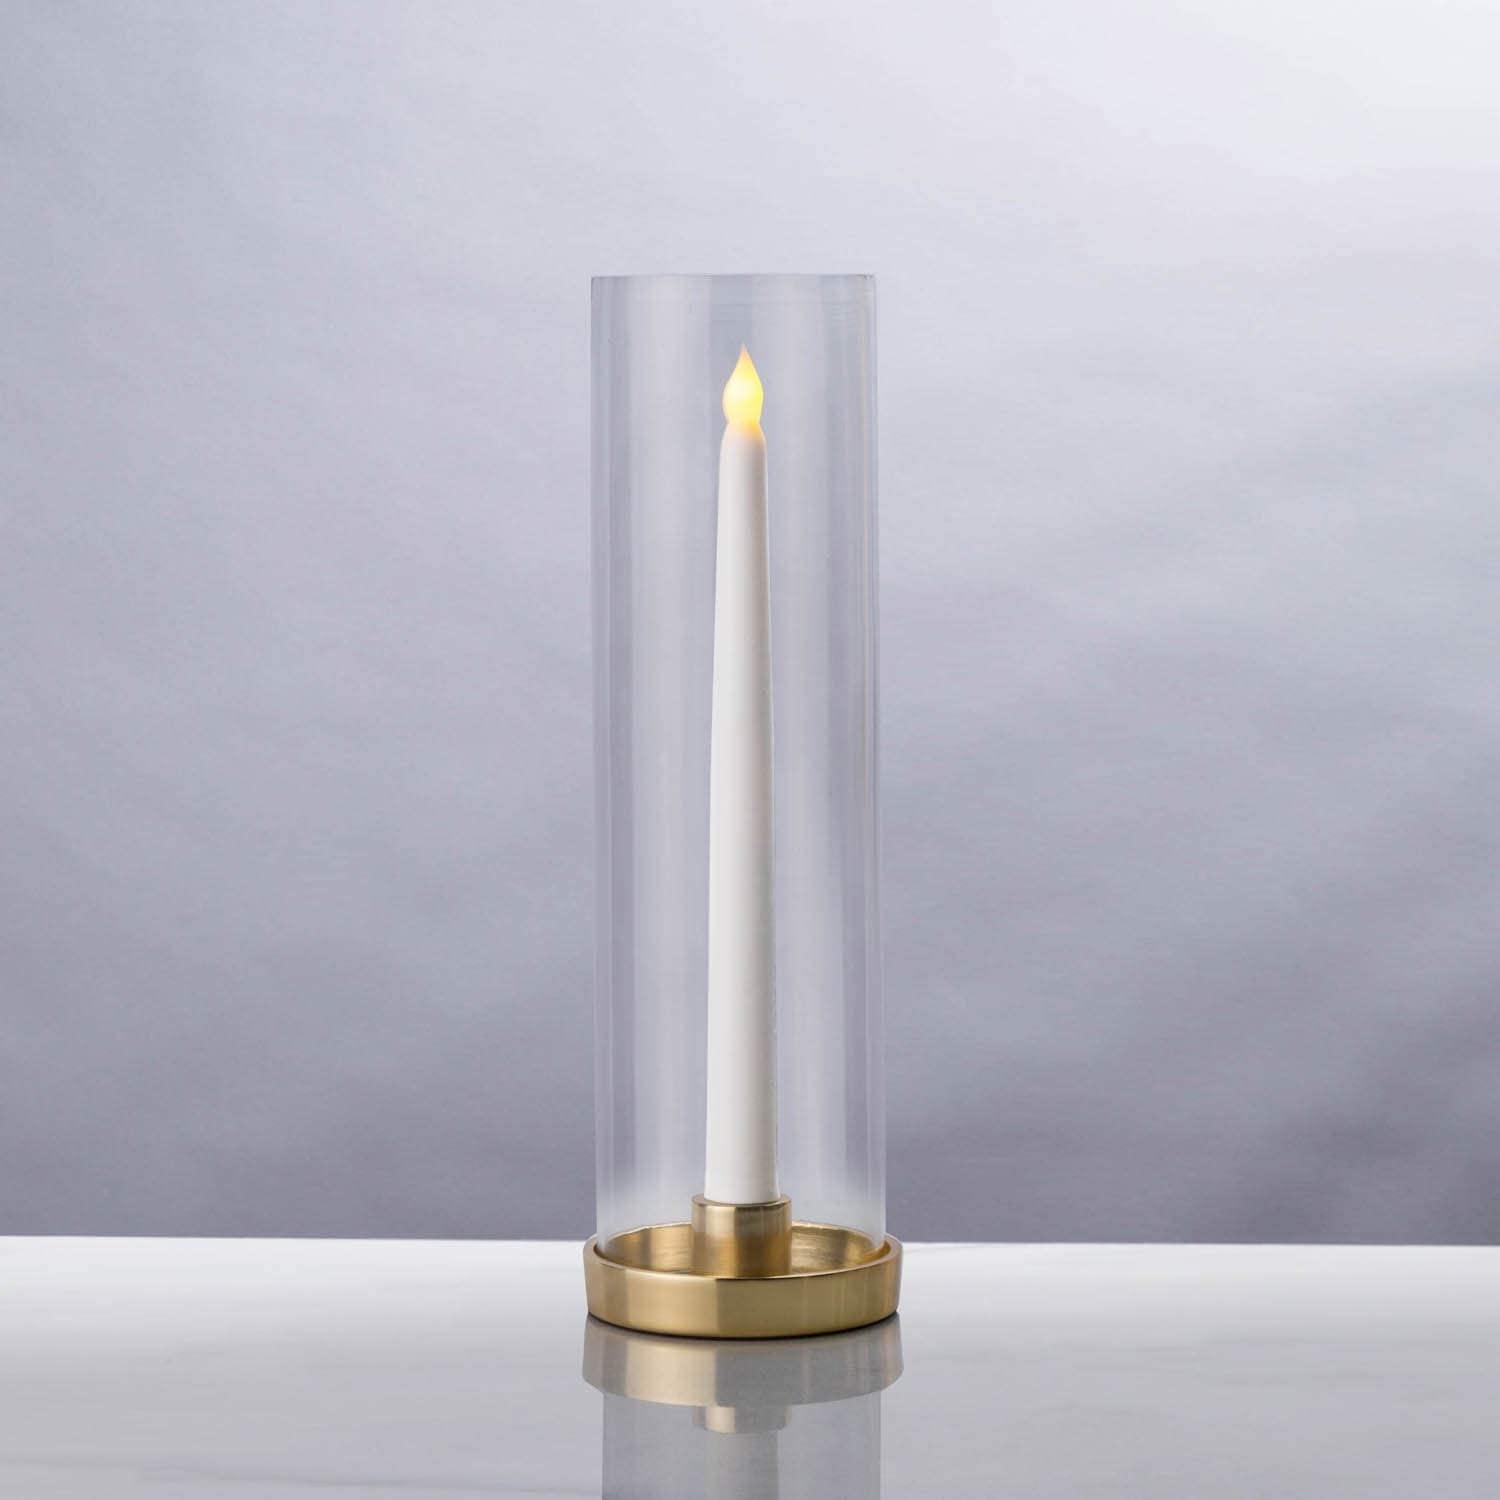 LampLust Hurricane Taper Candle Holder - Clear Glass Chimney with Brass Base, 12 Inch Tall, 3 Inch Diameter Tube, Wedding Table Centerpiece, Fits Standard Tapered Candlesticks